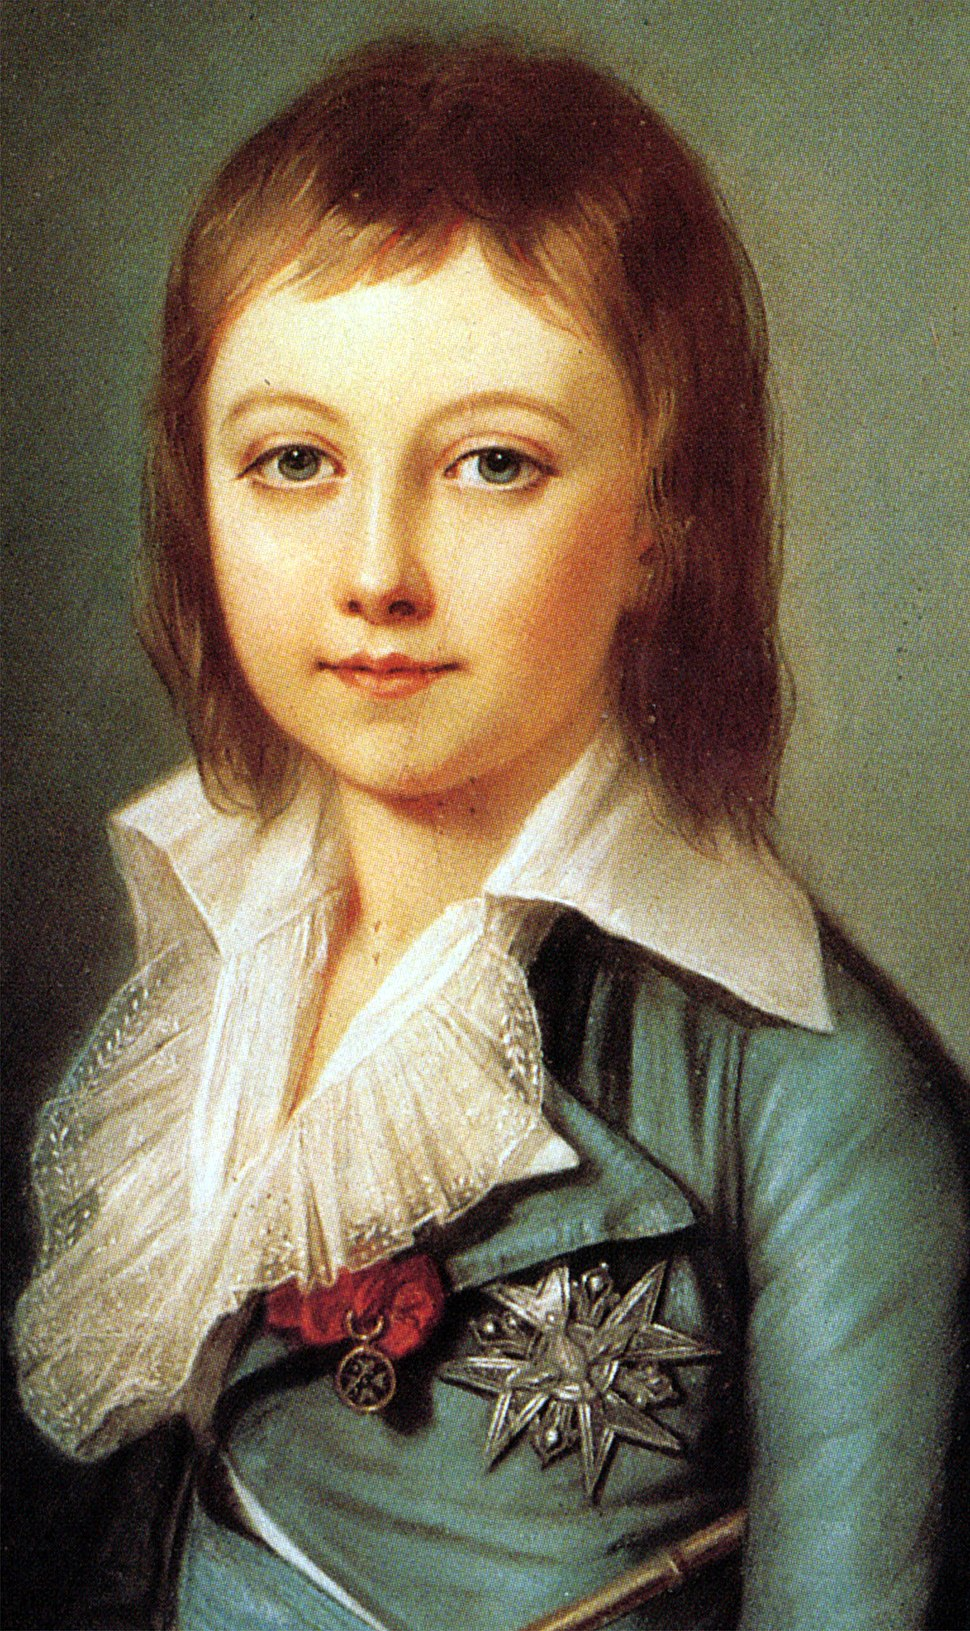 Louis Charles of France6